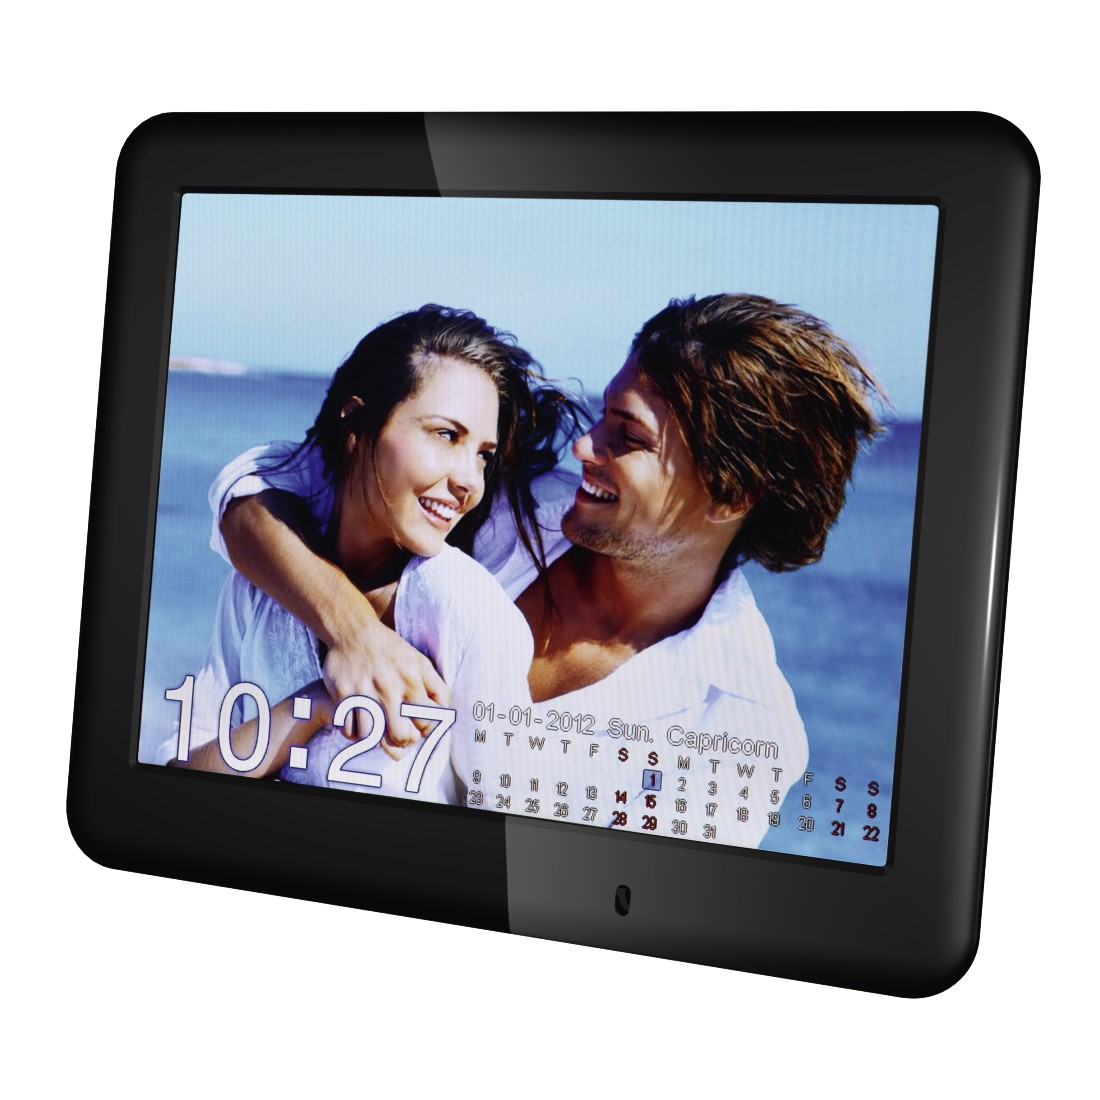 00095264 Hama 8uslb Digital Photo Frame 2032 Cm 80 Ultra